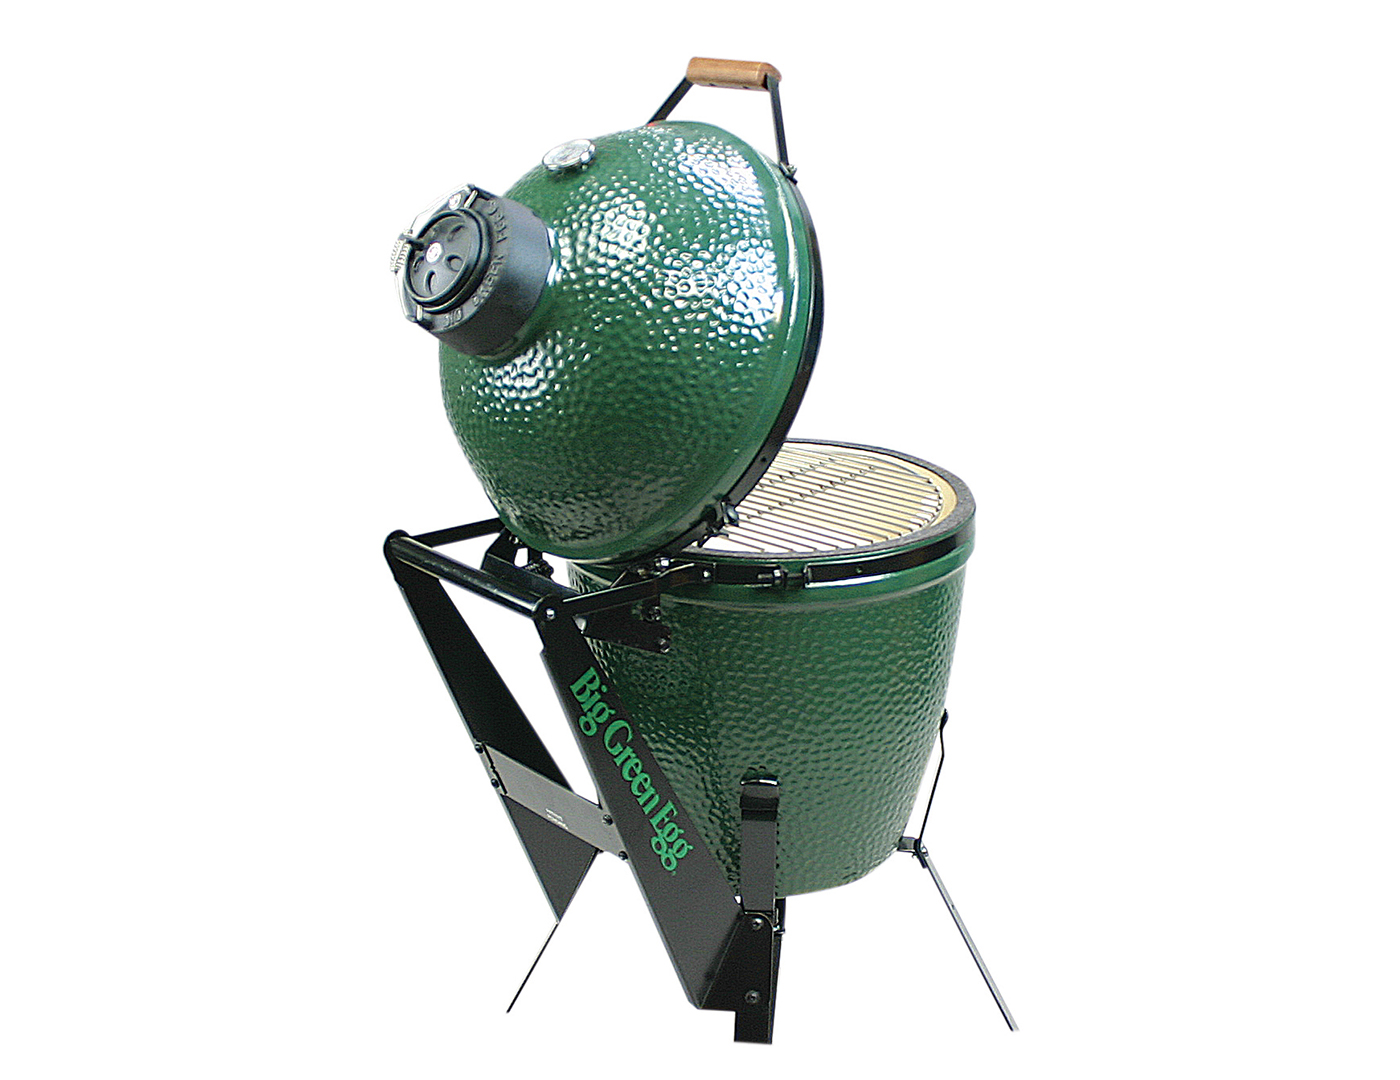 Big Green Egg Large Nest with Casters and Handler